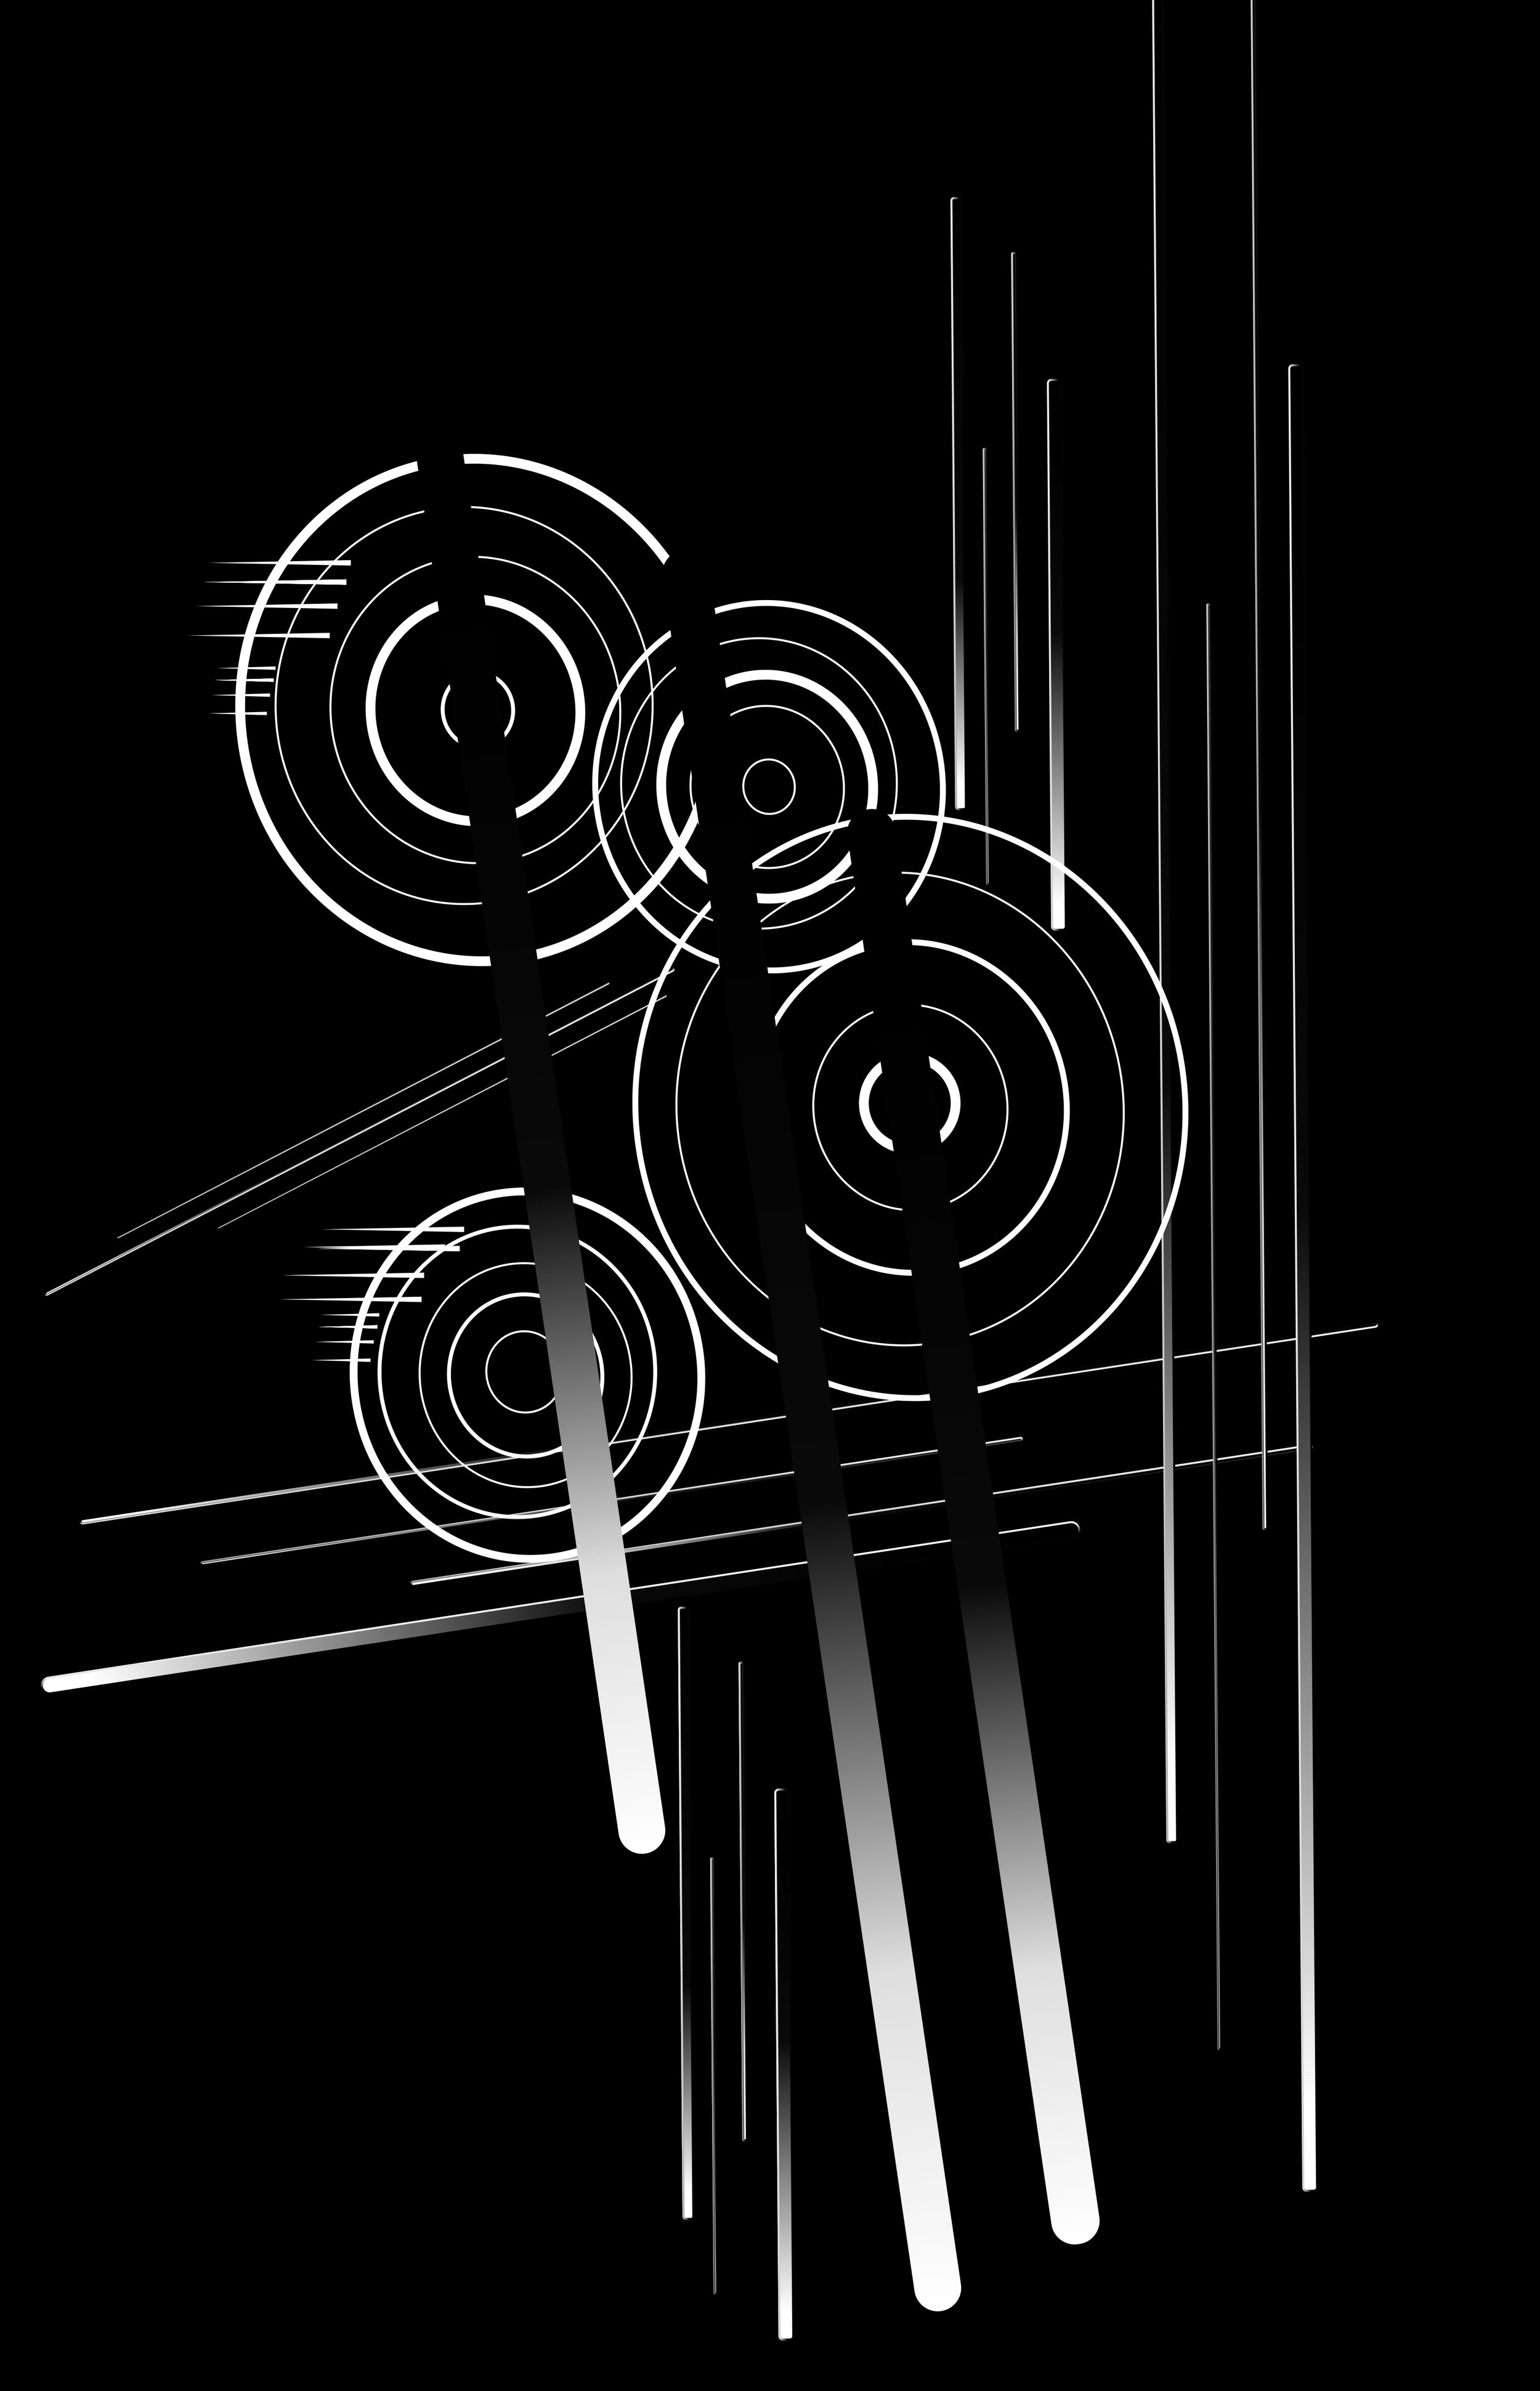 ART215 Illustrator/InDesign - Interpreting Music as Geometric Patterns: Mary Beth Strong